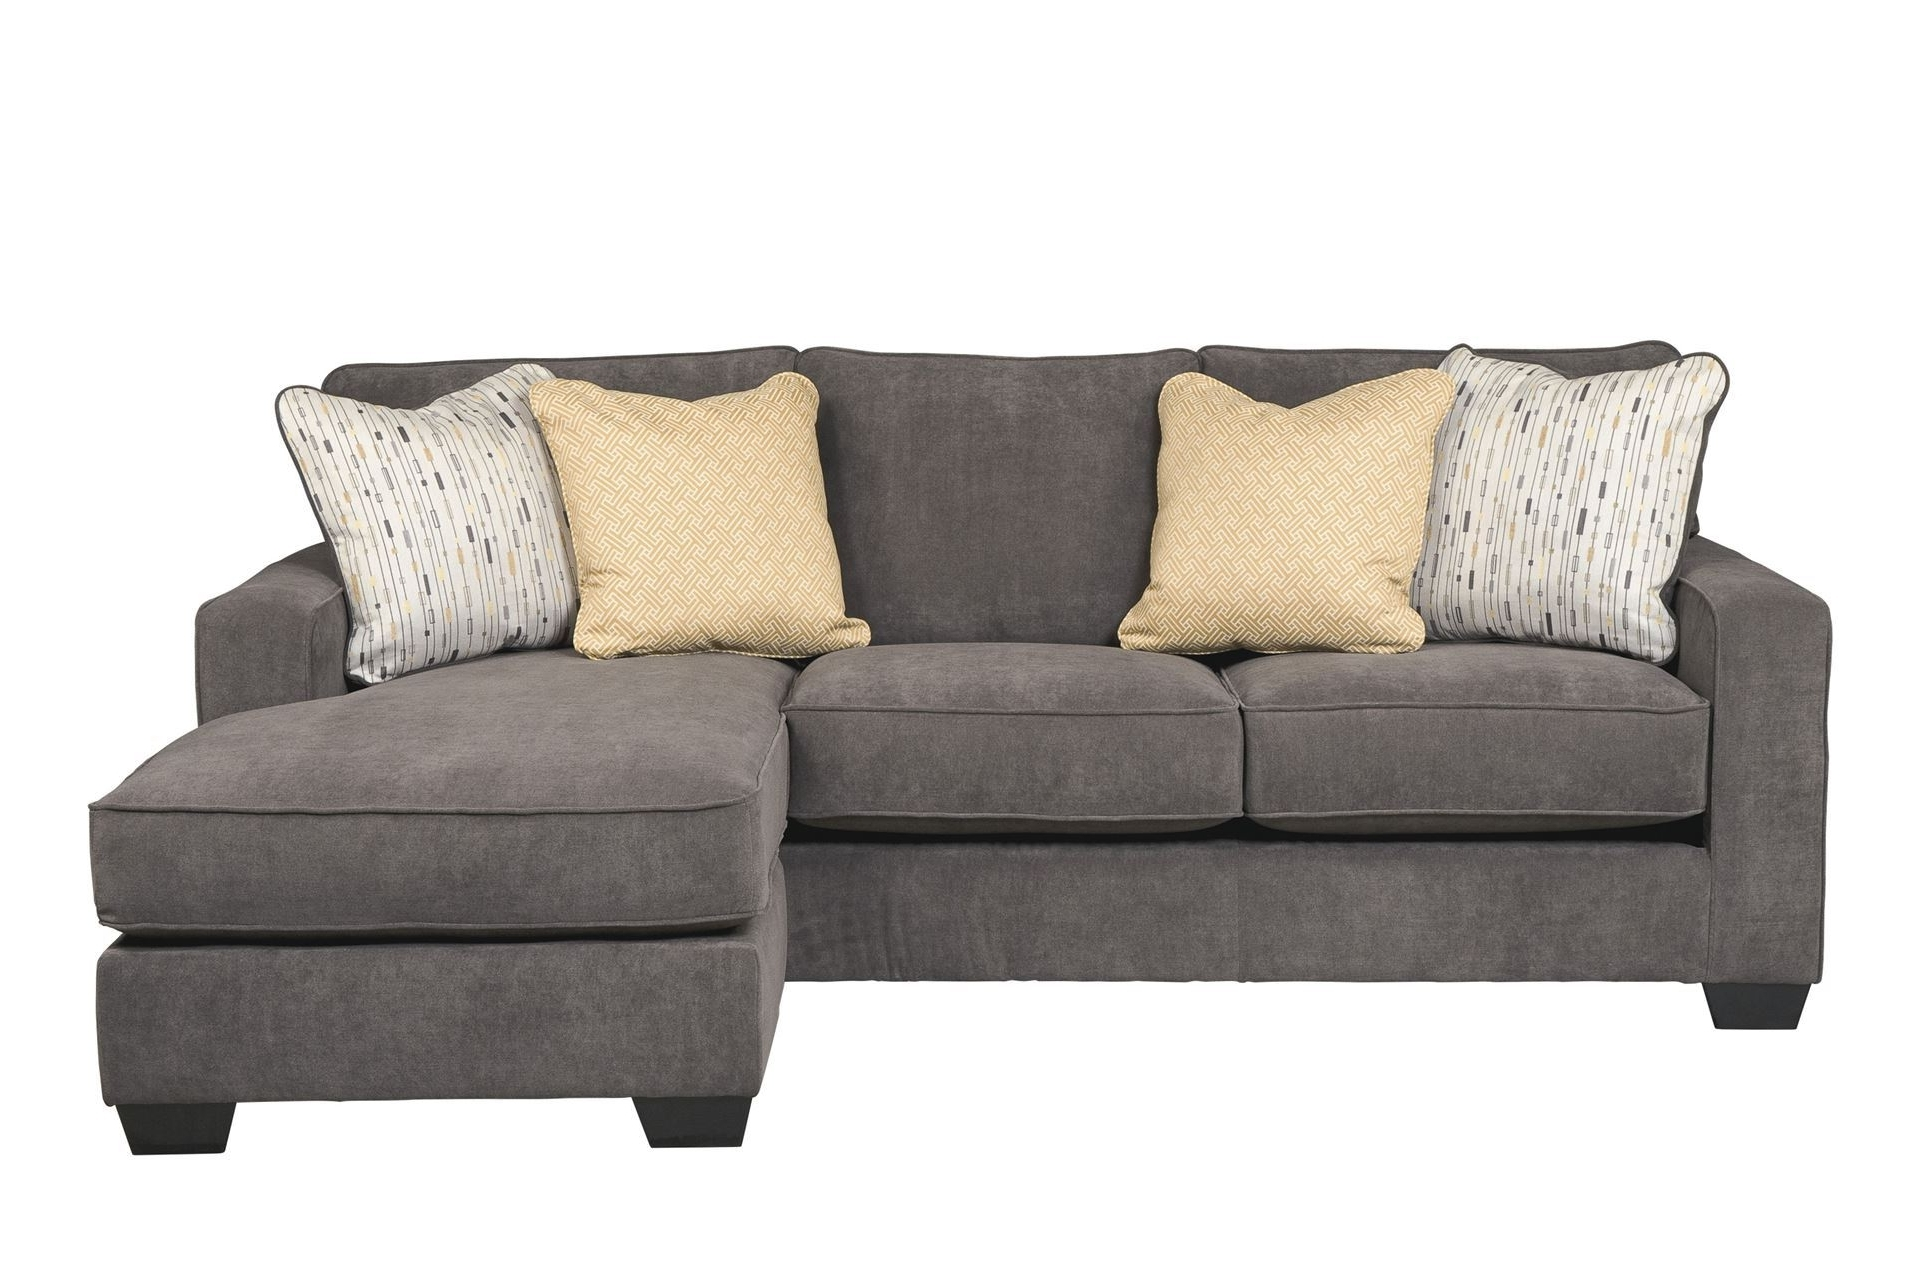 Best And Newest Grey Chaise Sofas For The Ideal Solution For Small Spaces – Sectional With Sleeper Sofa (View 7 of 15)